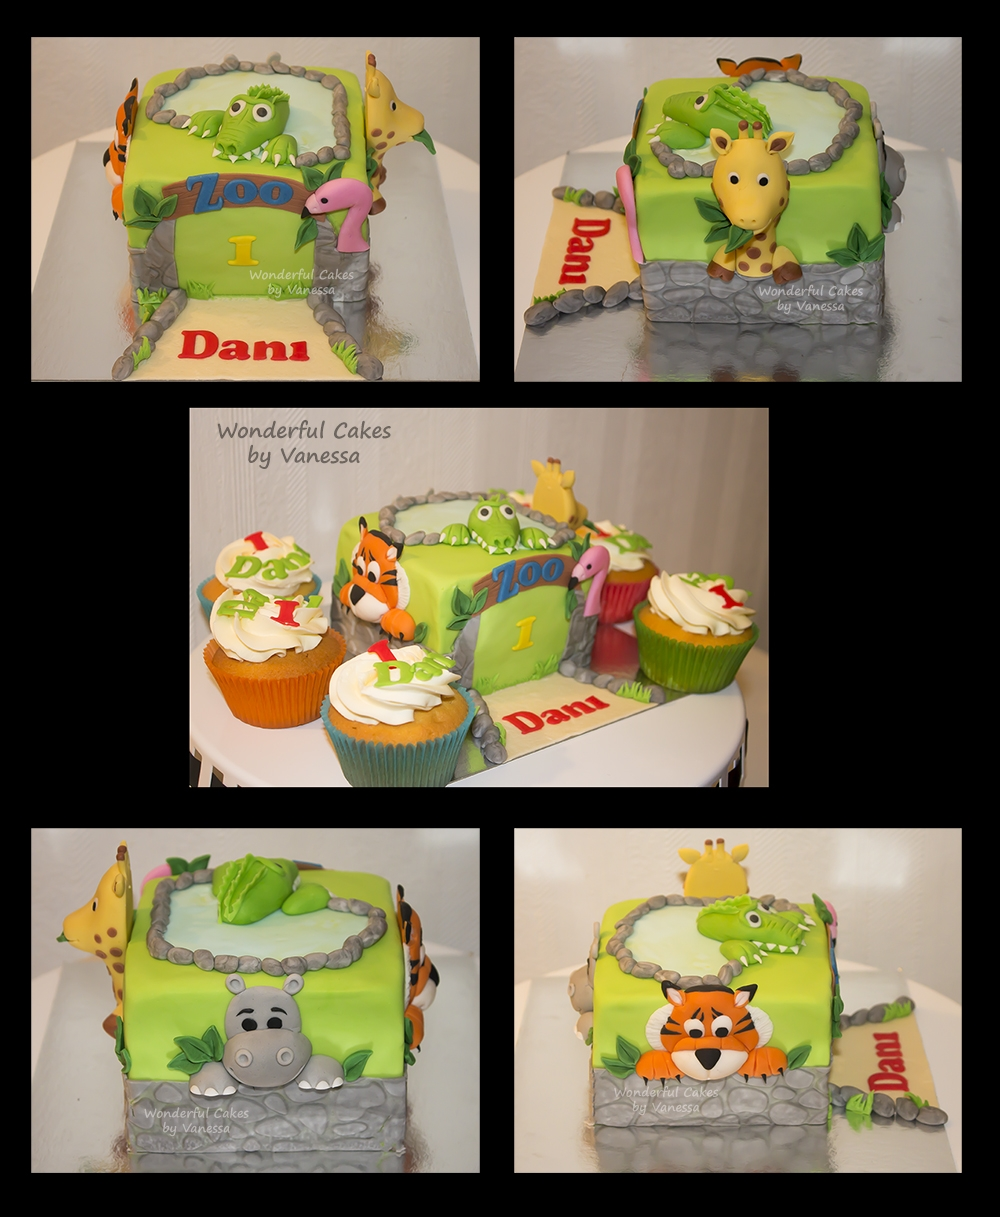 Zoo Smash Cake The famous 'zoo cake' (original is from the book of Wendy Schlagwein) in a mini version, like a little smash cake for birthday...